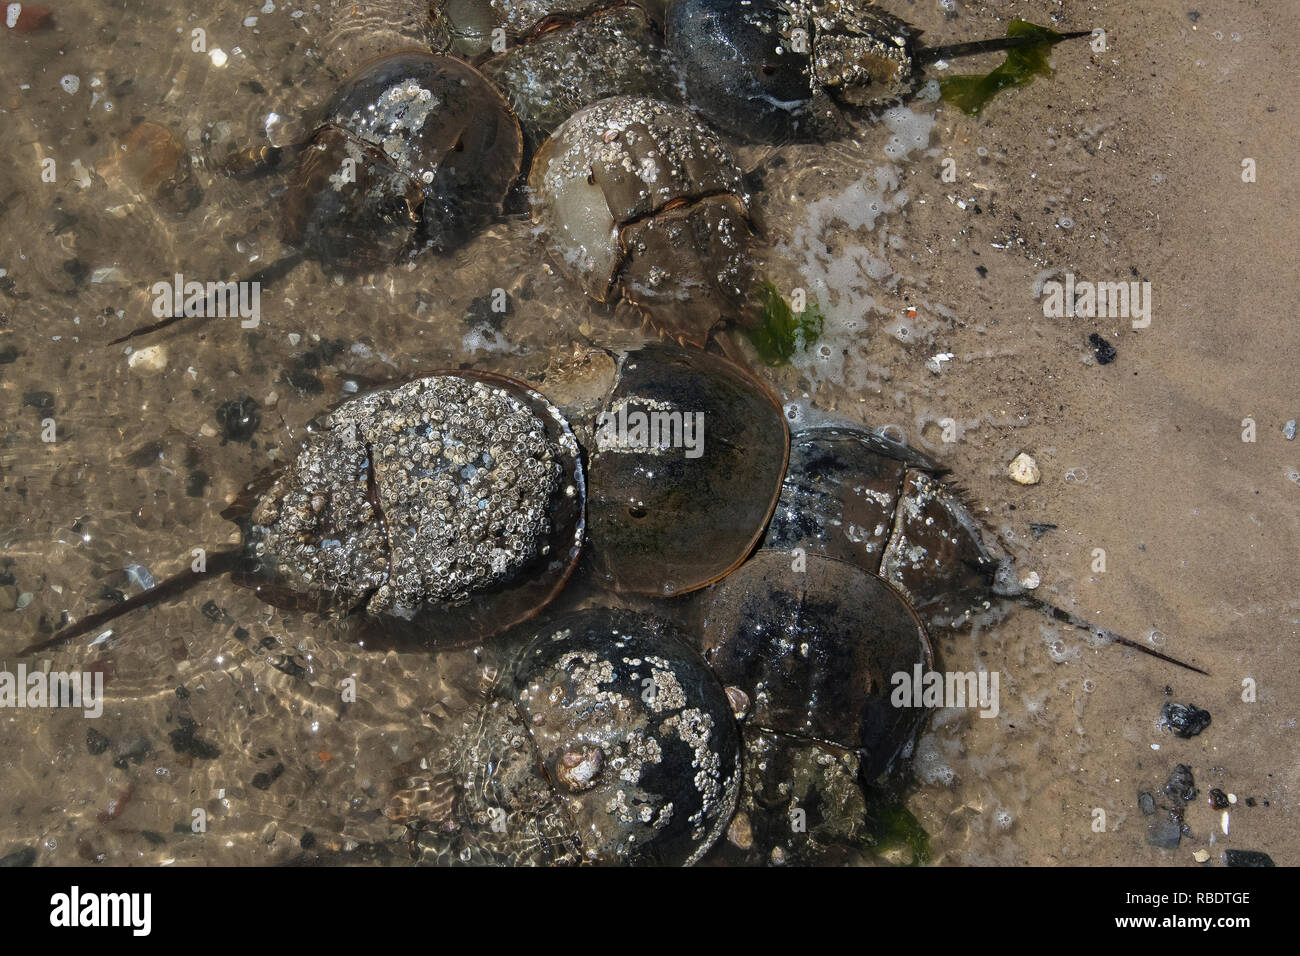 Mating Atlantic horseshoe crabs at high tide in late May - Stock Image